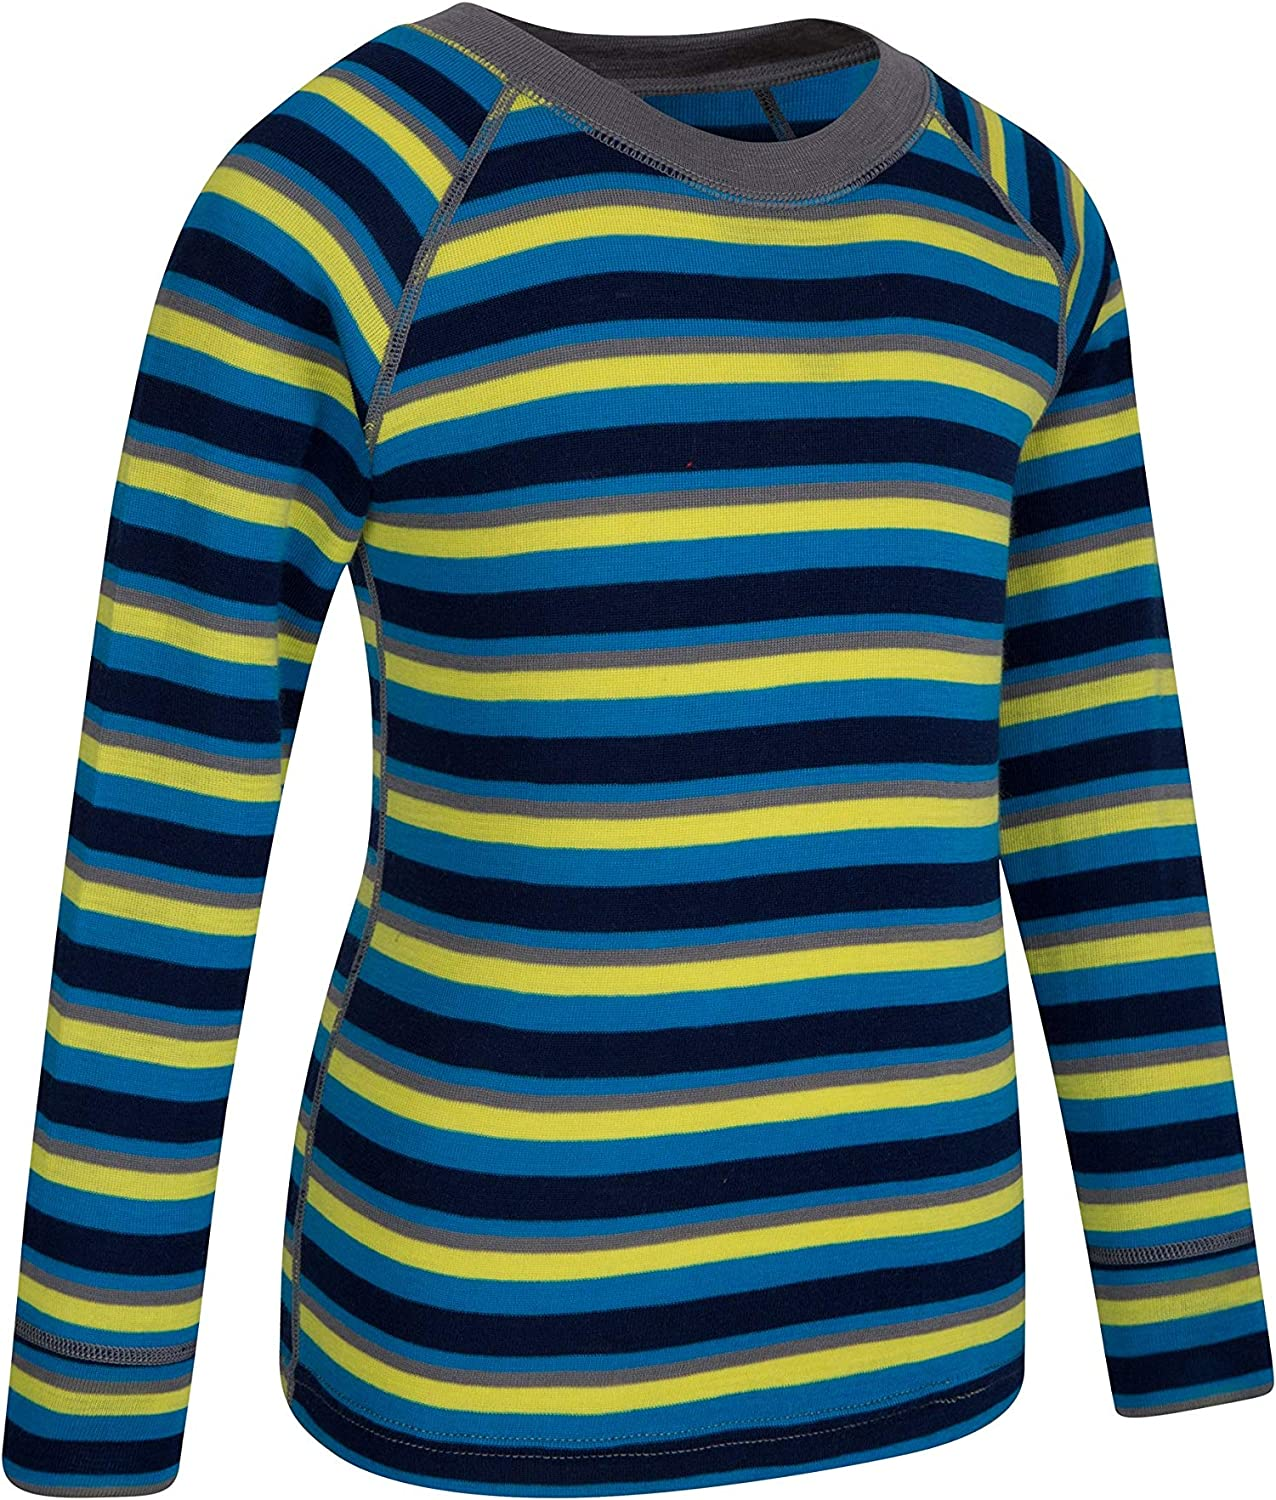 Round Neck Childrens Tee Ideal Shirt While Camping in Cold Weather Mountain Warehouse Merino Kids Thermal Baselayer Top Lightweight Tshirt Breathable